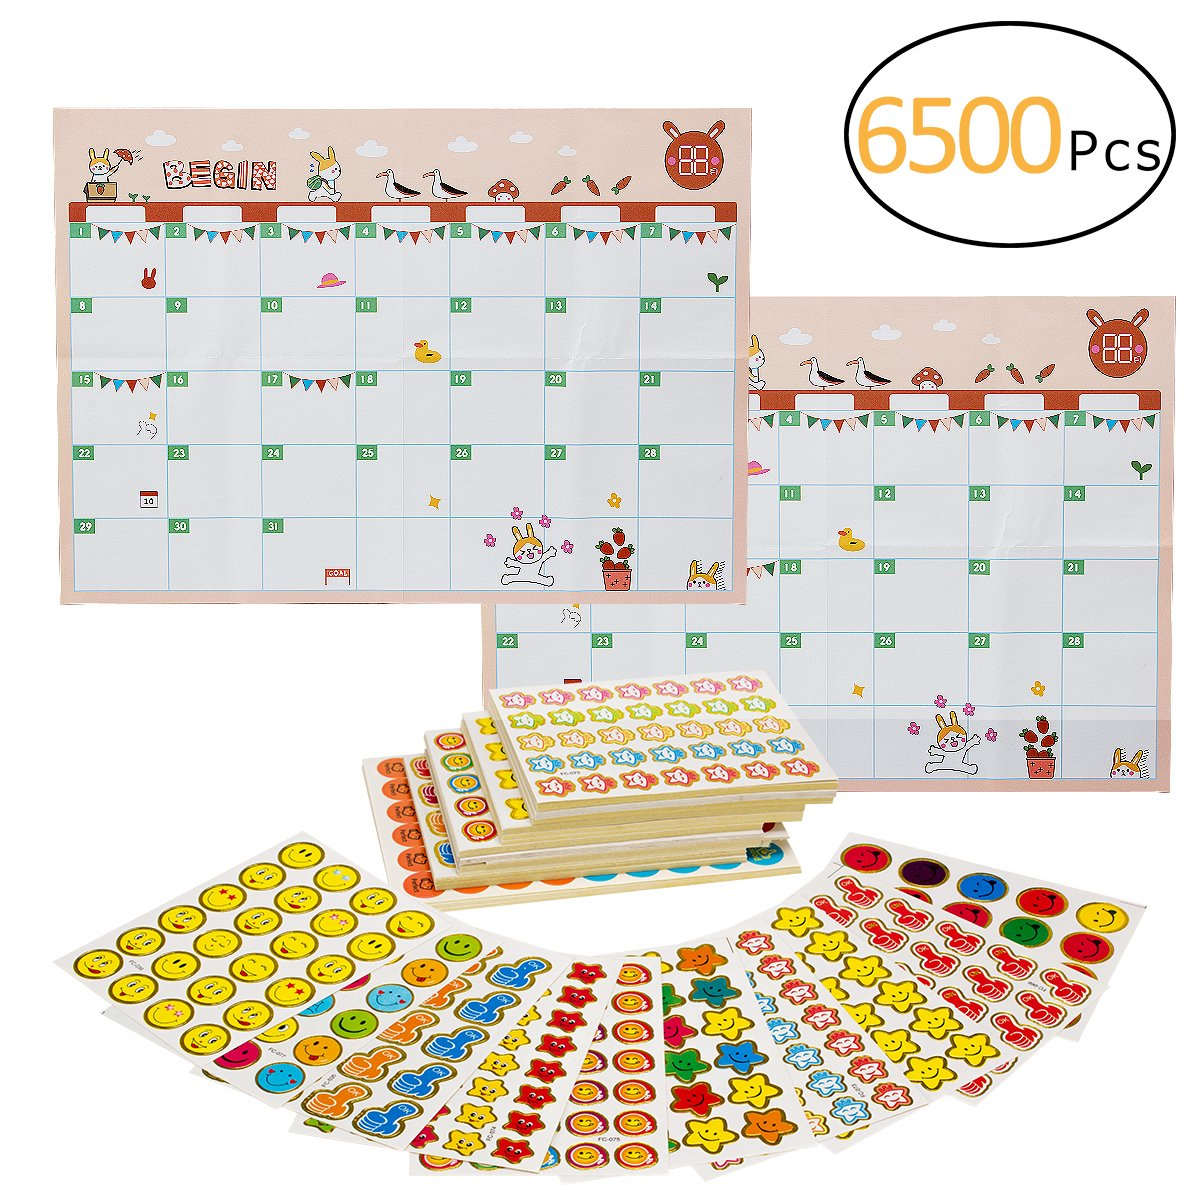 Biubee 6500 Pcs Kids Reward Stickers- 220 Sheets 11 Designs of Emojis, Smiley Face,Stars Incentive Stickers for Teachers Classroom School Bulk Use